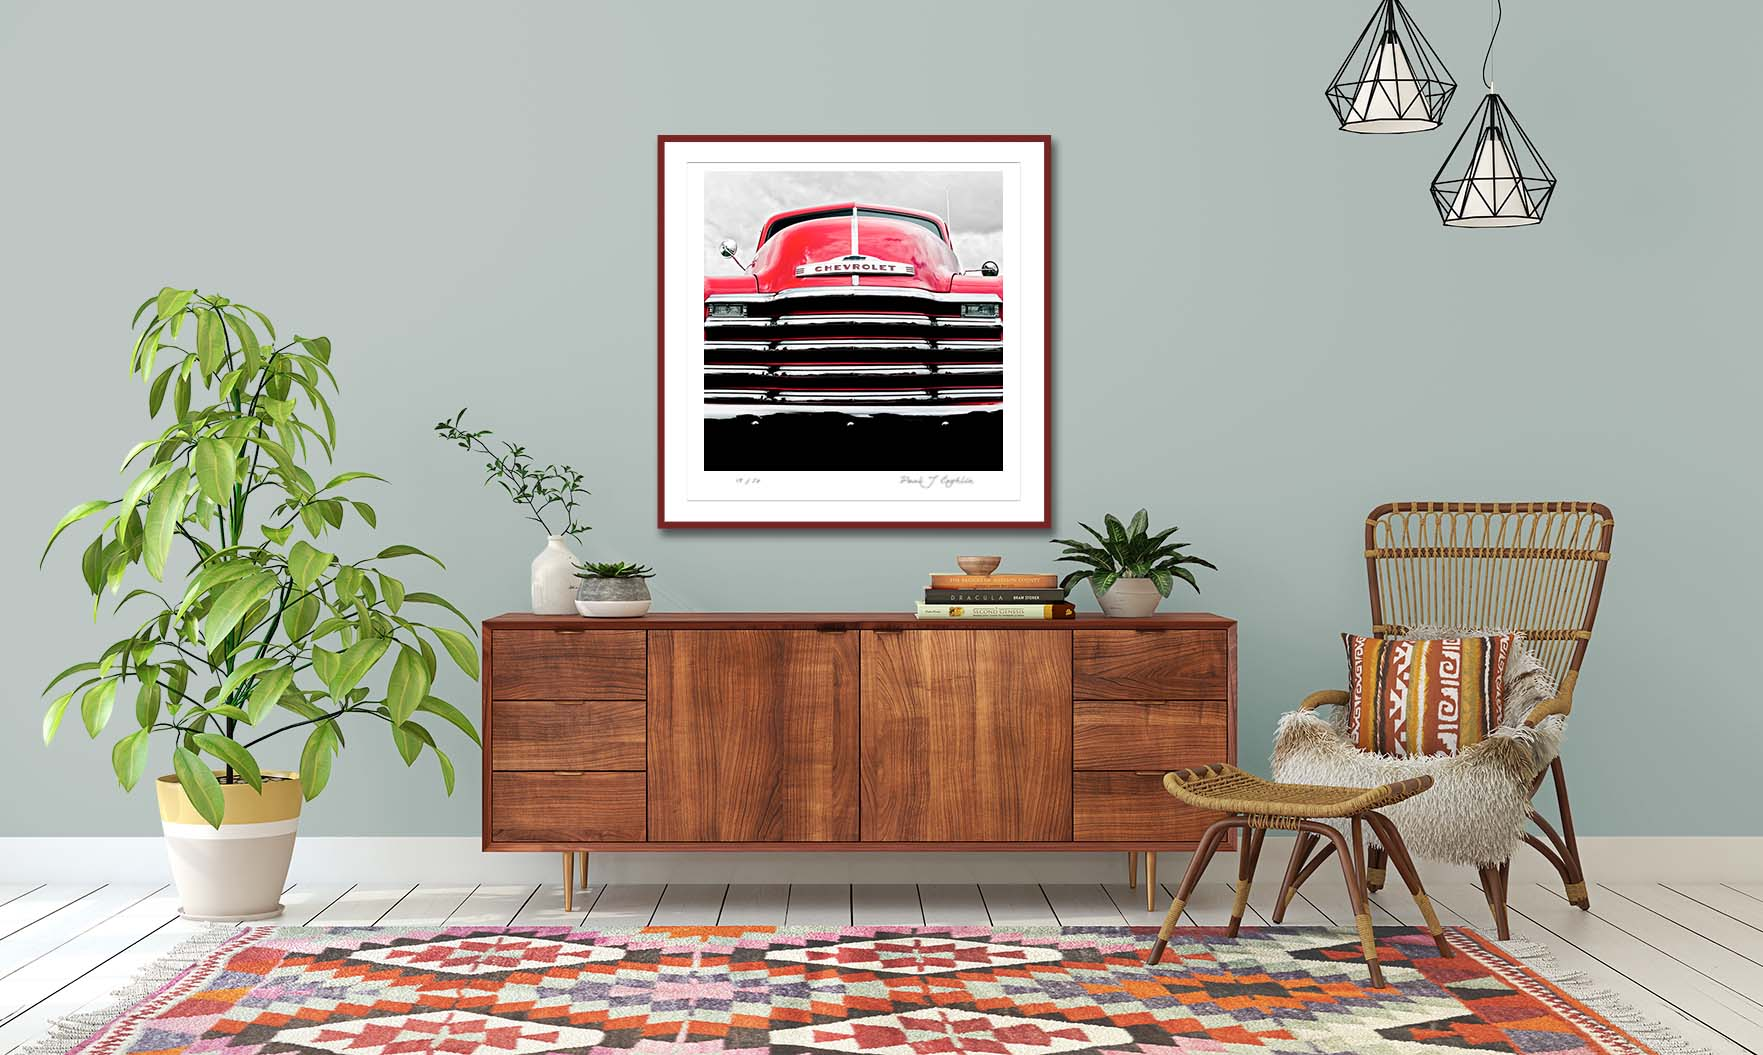 Red Chevy print. Colour abstract photographic prints of a re Chevy by fine art photographer Paul Coghlin. Limited edition photographic prints.